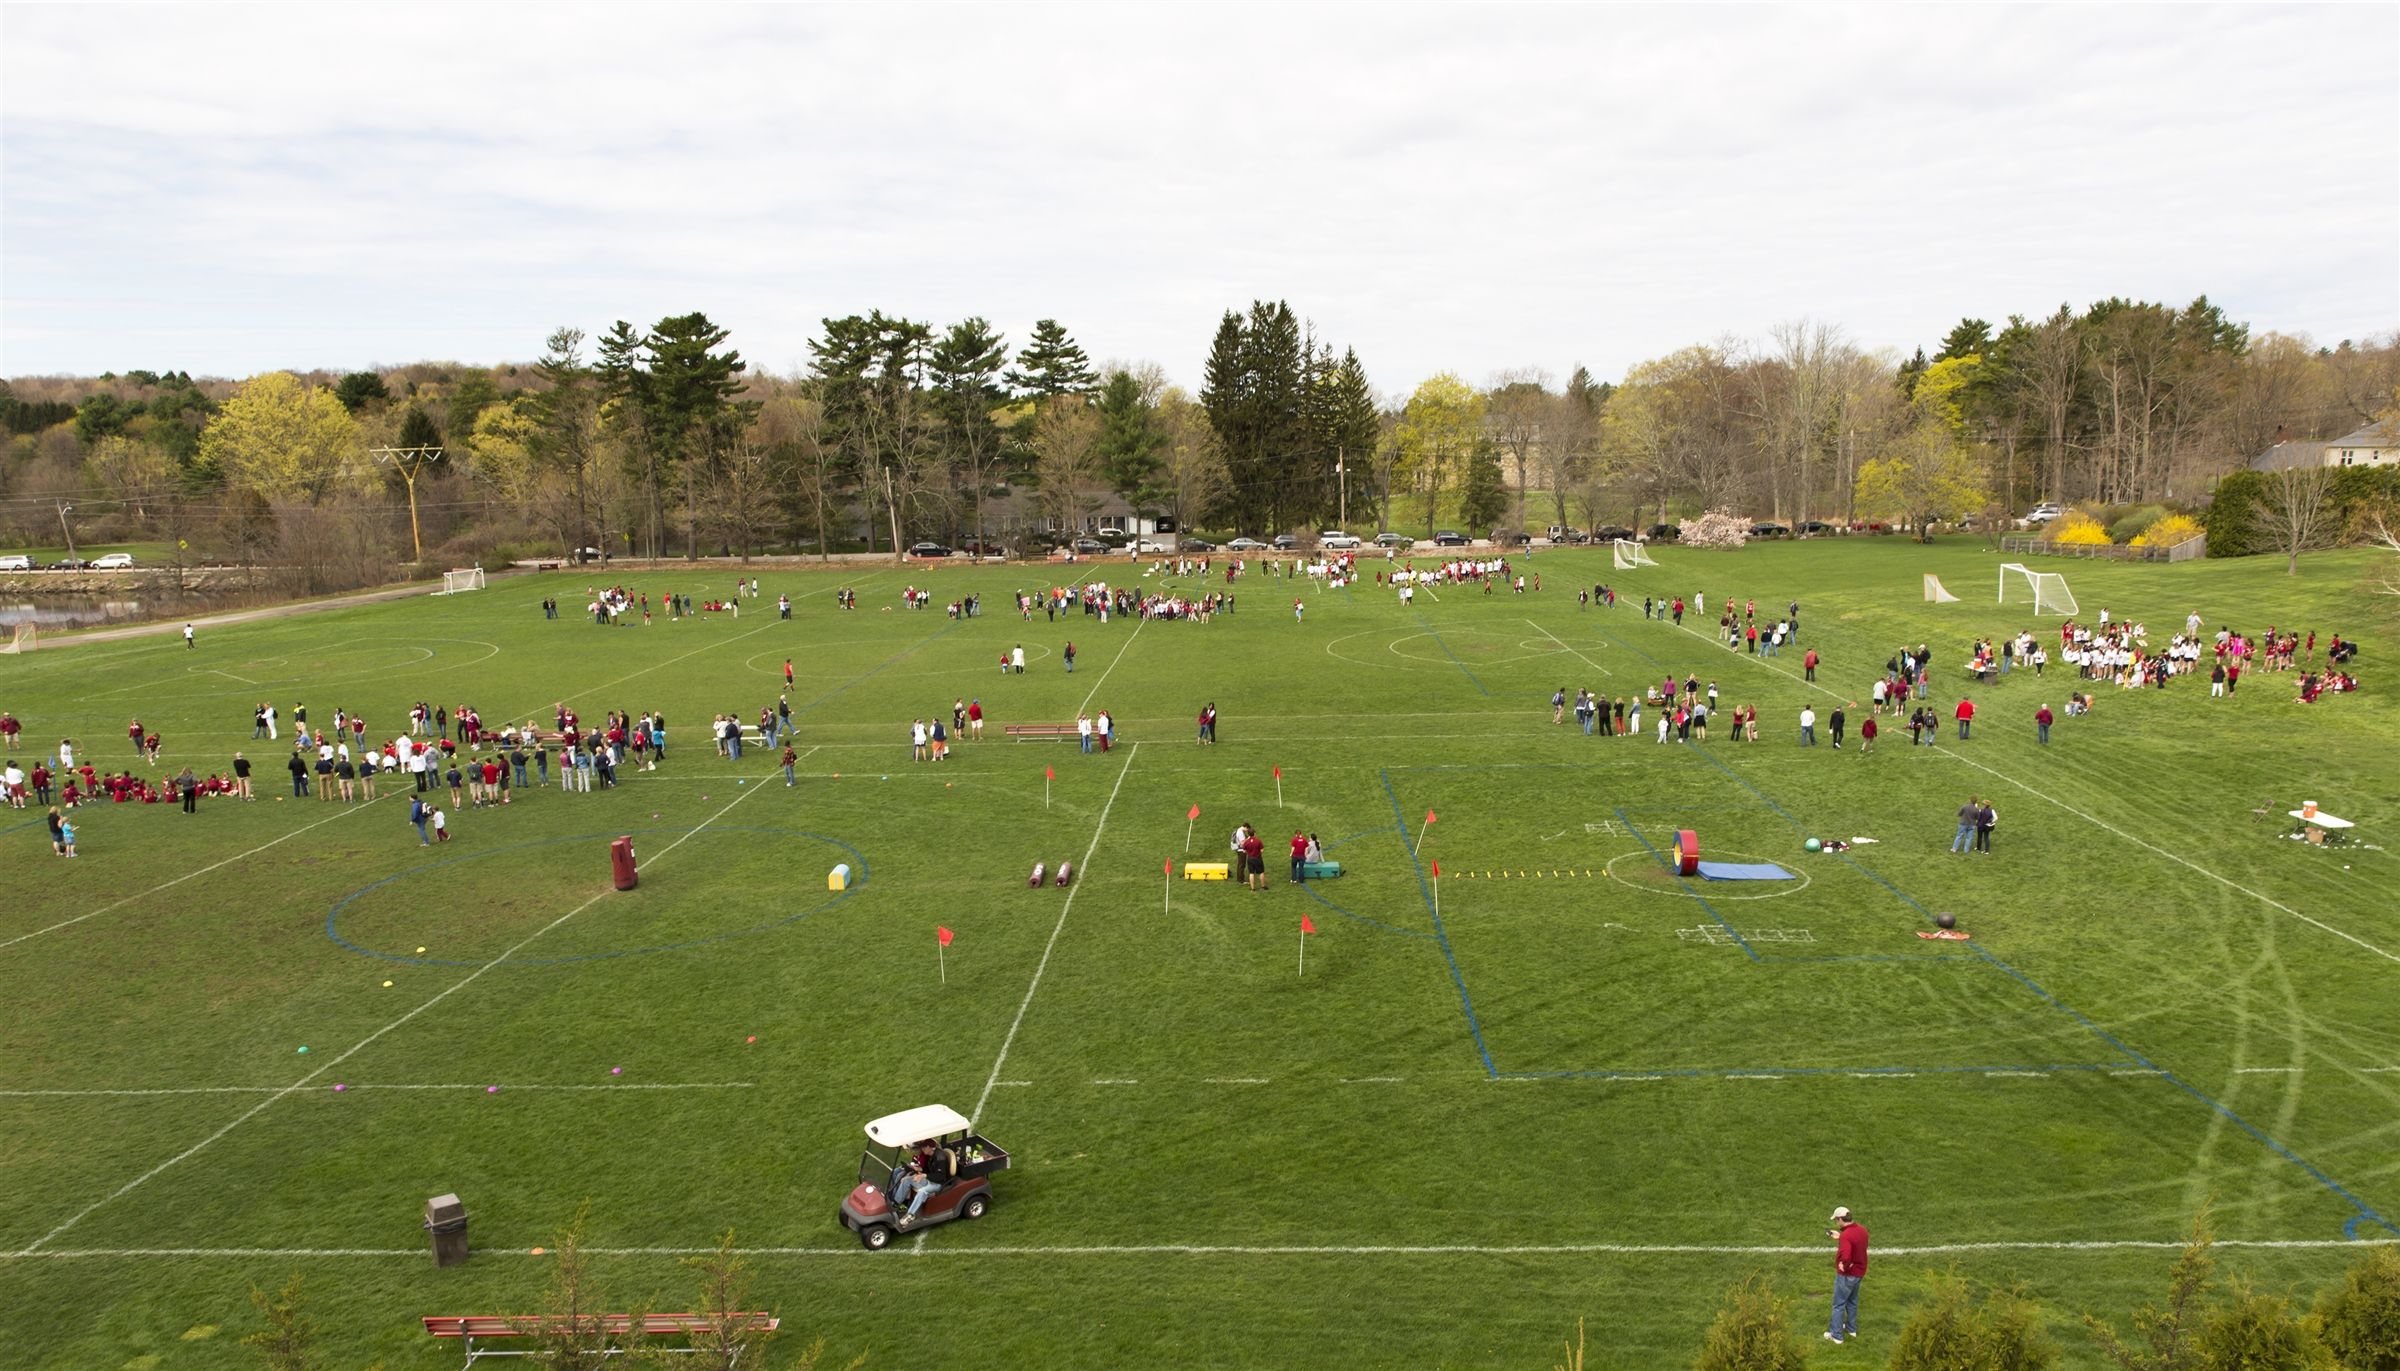 The Parkerville Fields, located on our main campus, include Ting Field, Sharp Field, and Robinson- O'Rourke Field.